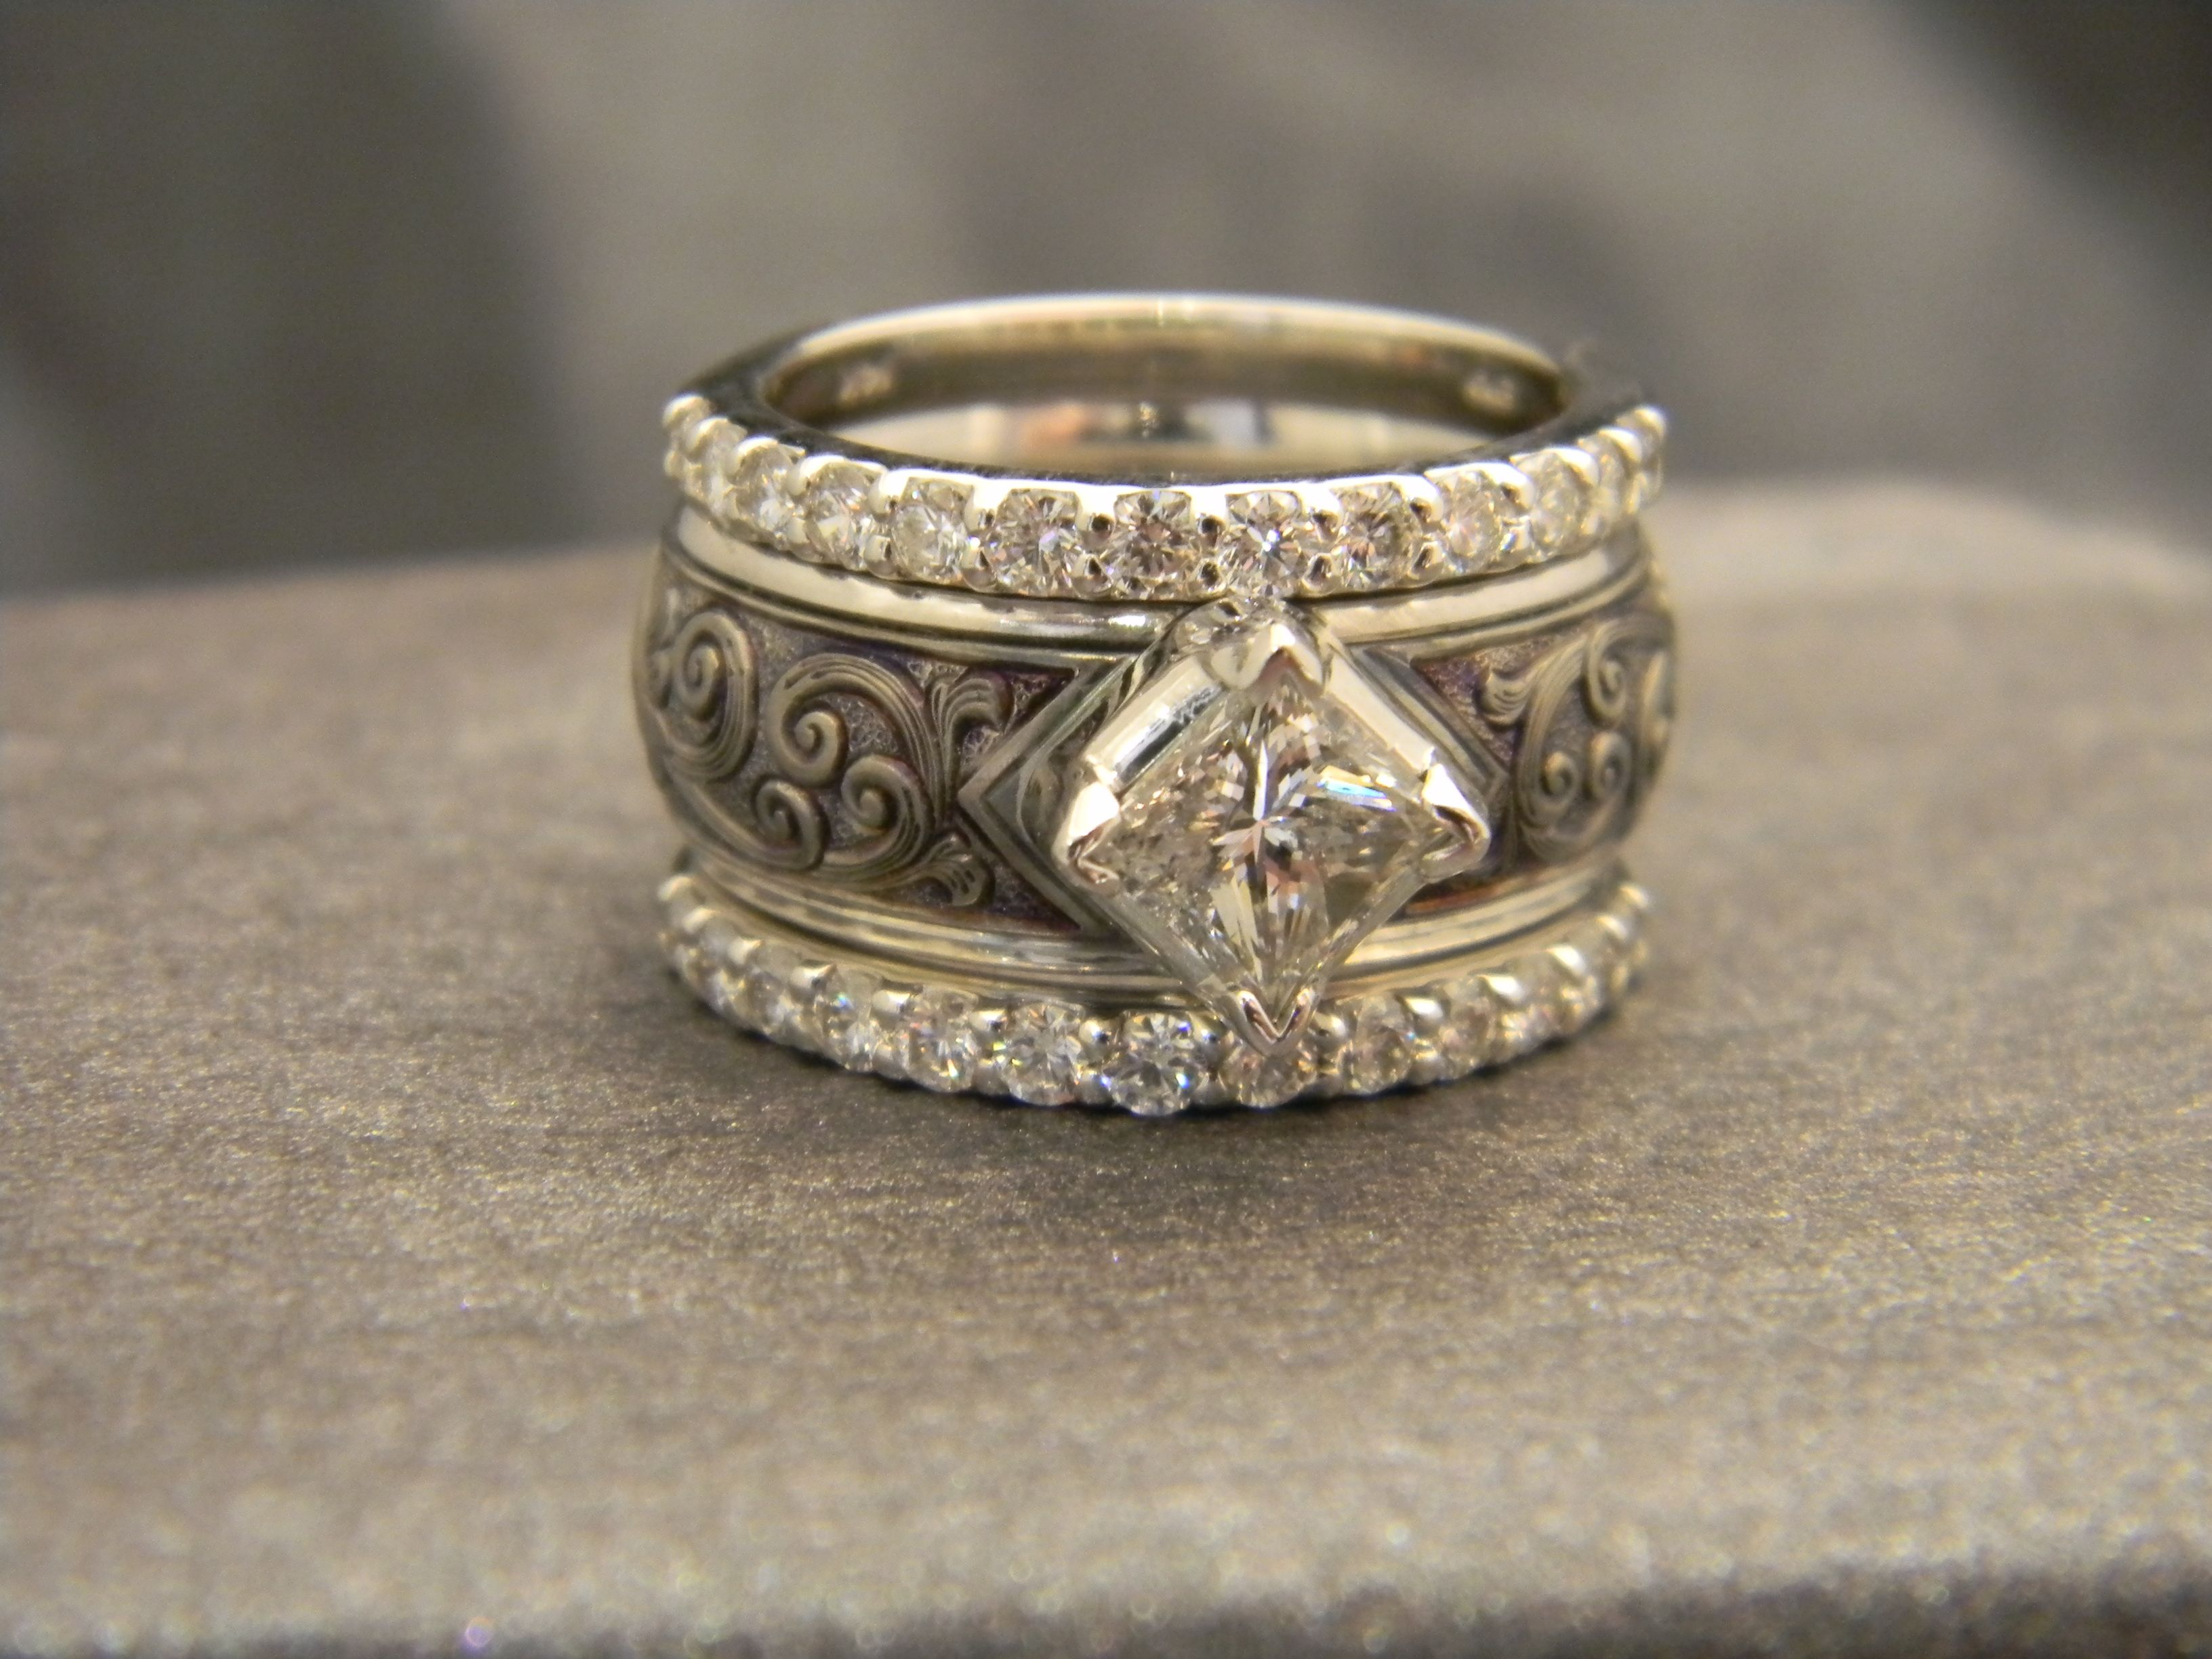 8mm Titanium ring with a 14K White Gold Wrap, Deep Relief